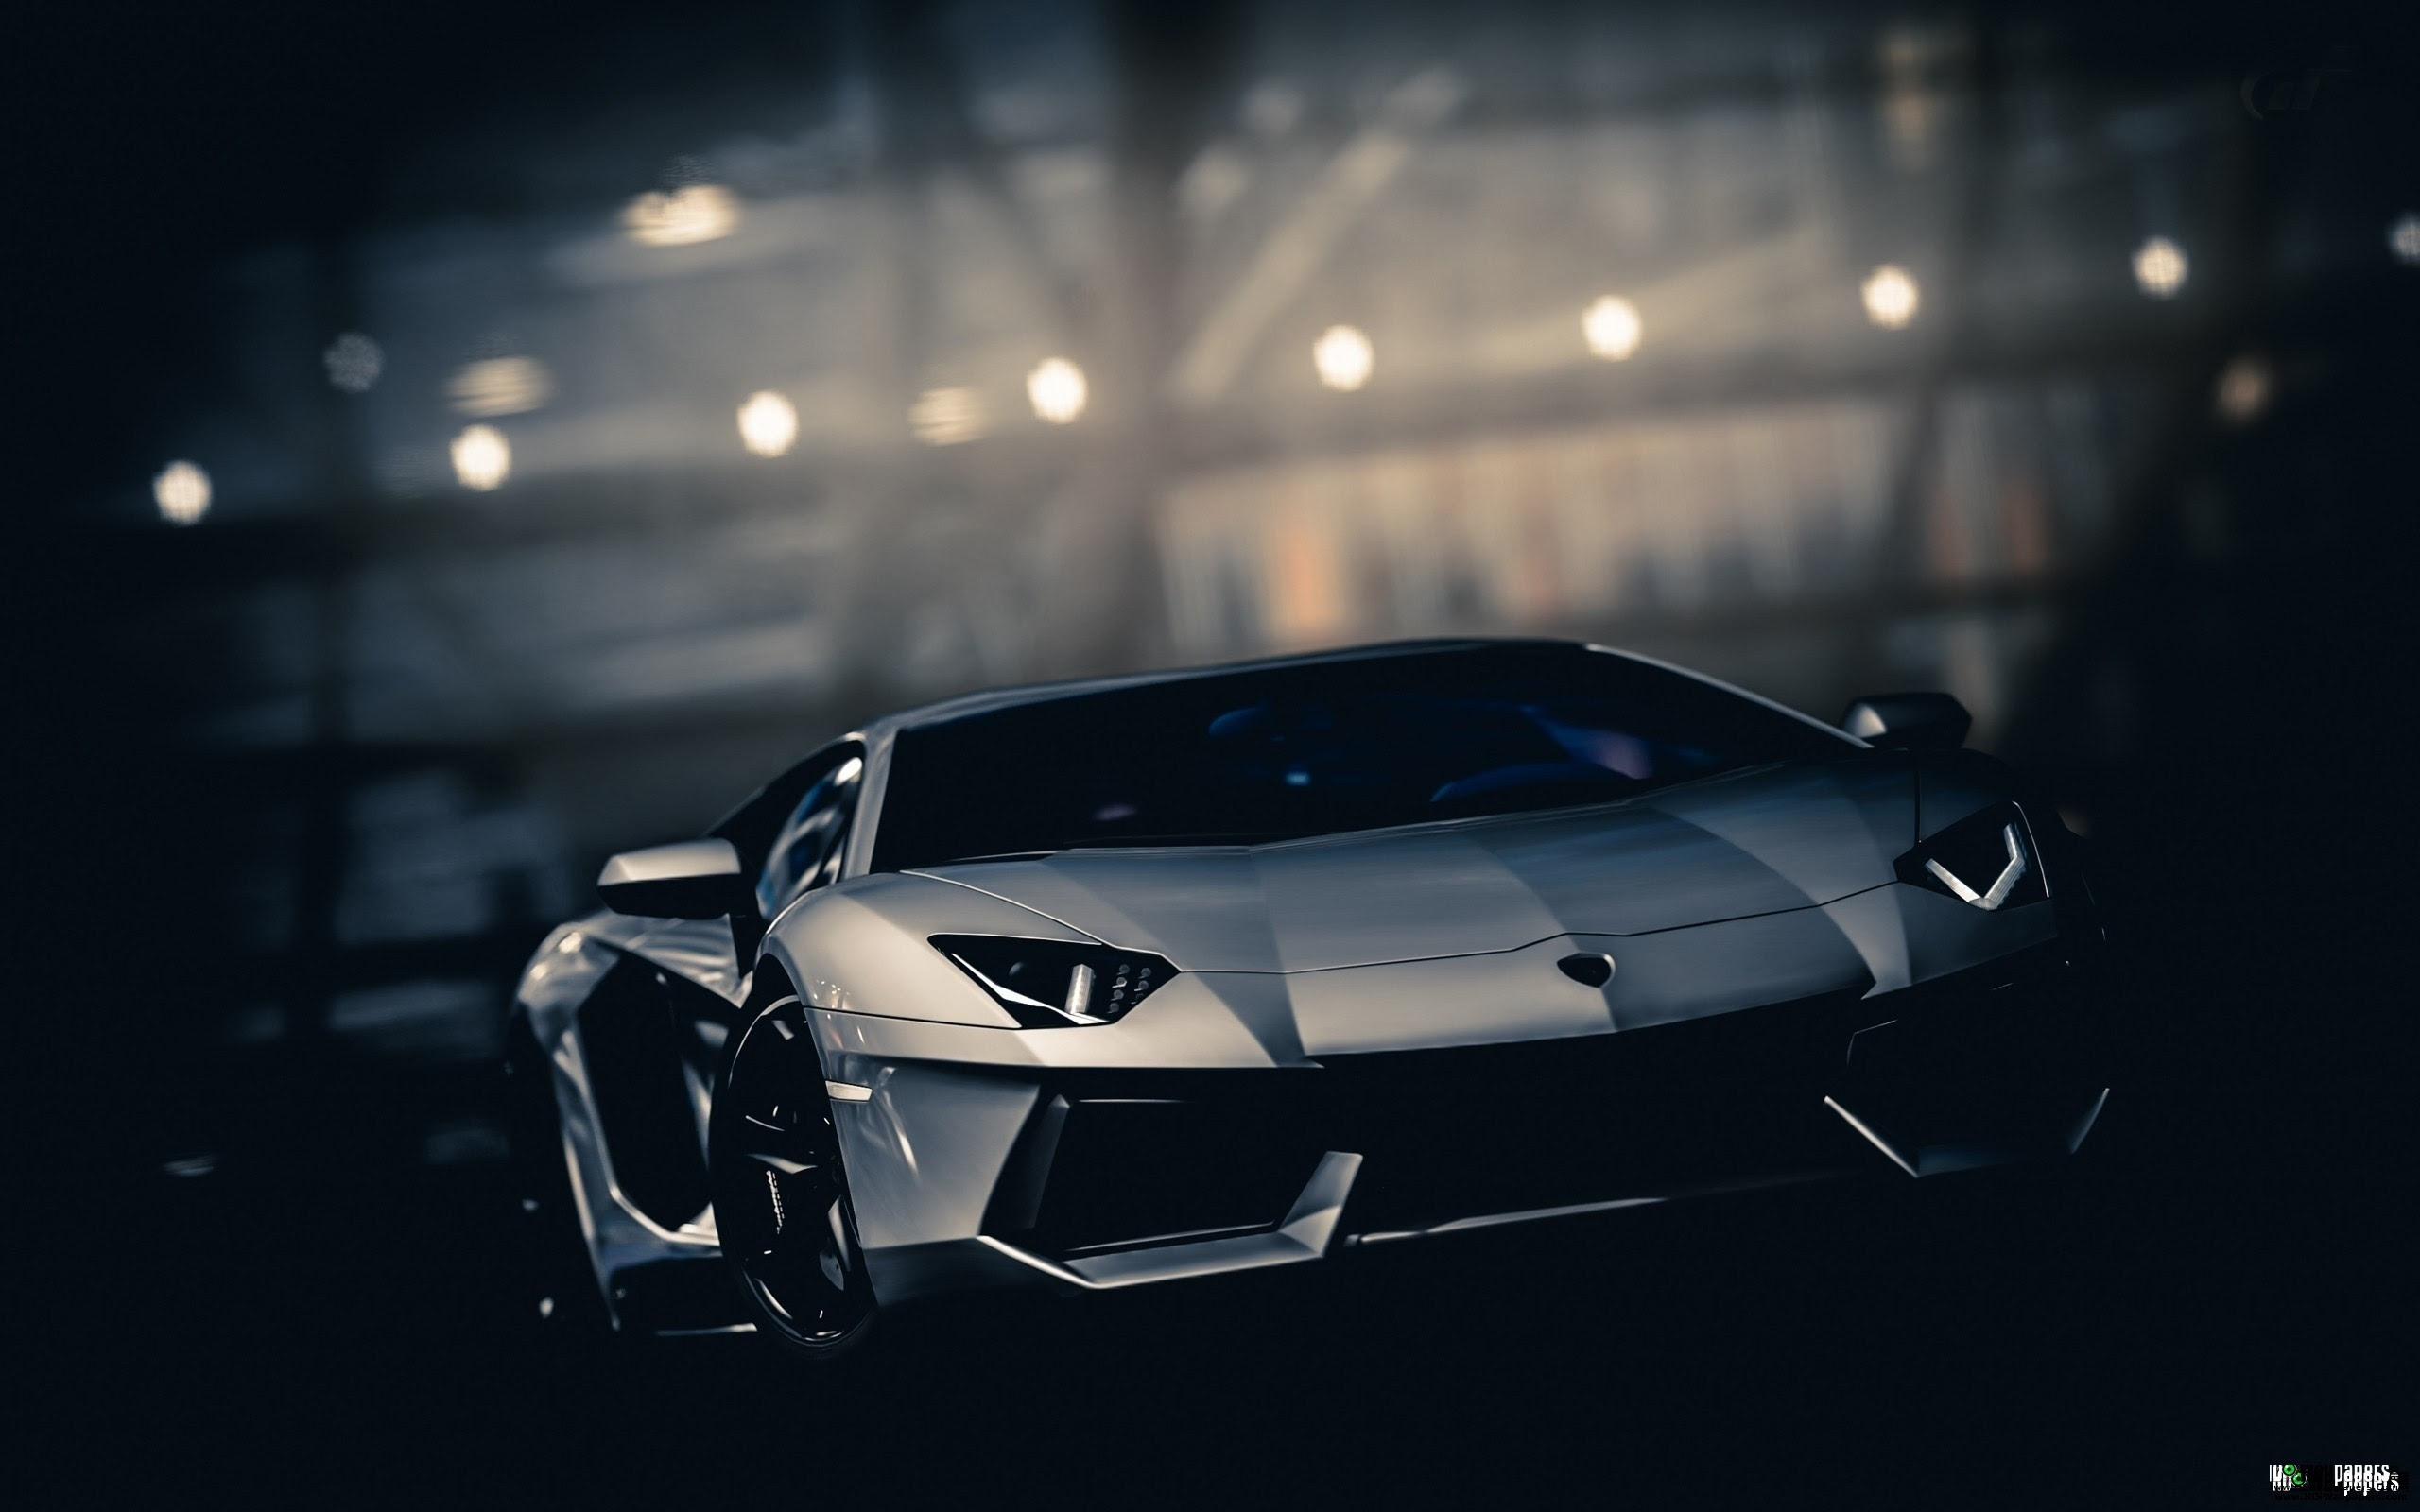 I have an older laptop that i can use/sacrifice, or should i get a small pc case? Car Wallpaper Hd For Pc Download Picture Idokeren